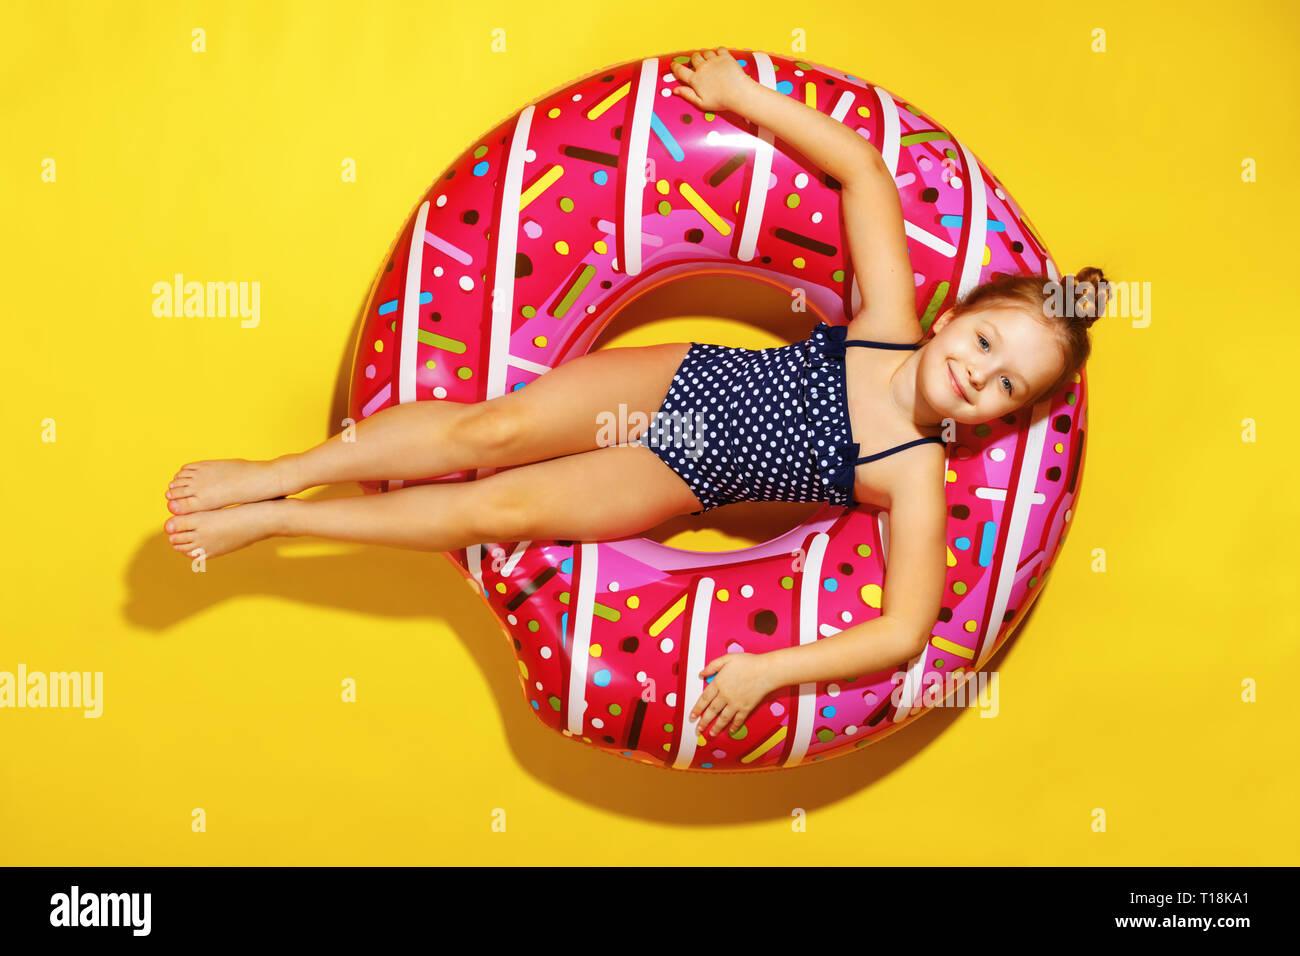 A little child girl in a swimwear suit lying on a donut inflatable circle. Yellow background. Top view. - Stock Image